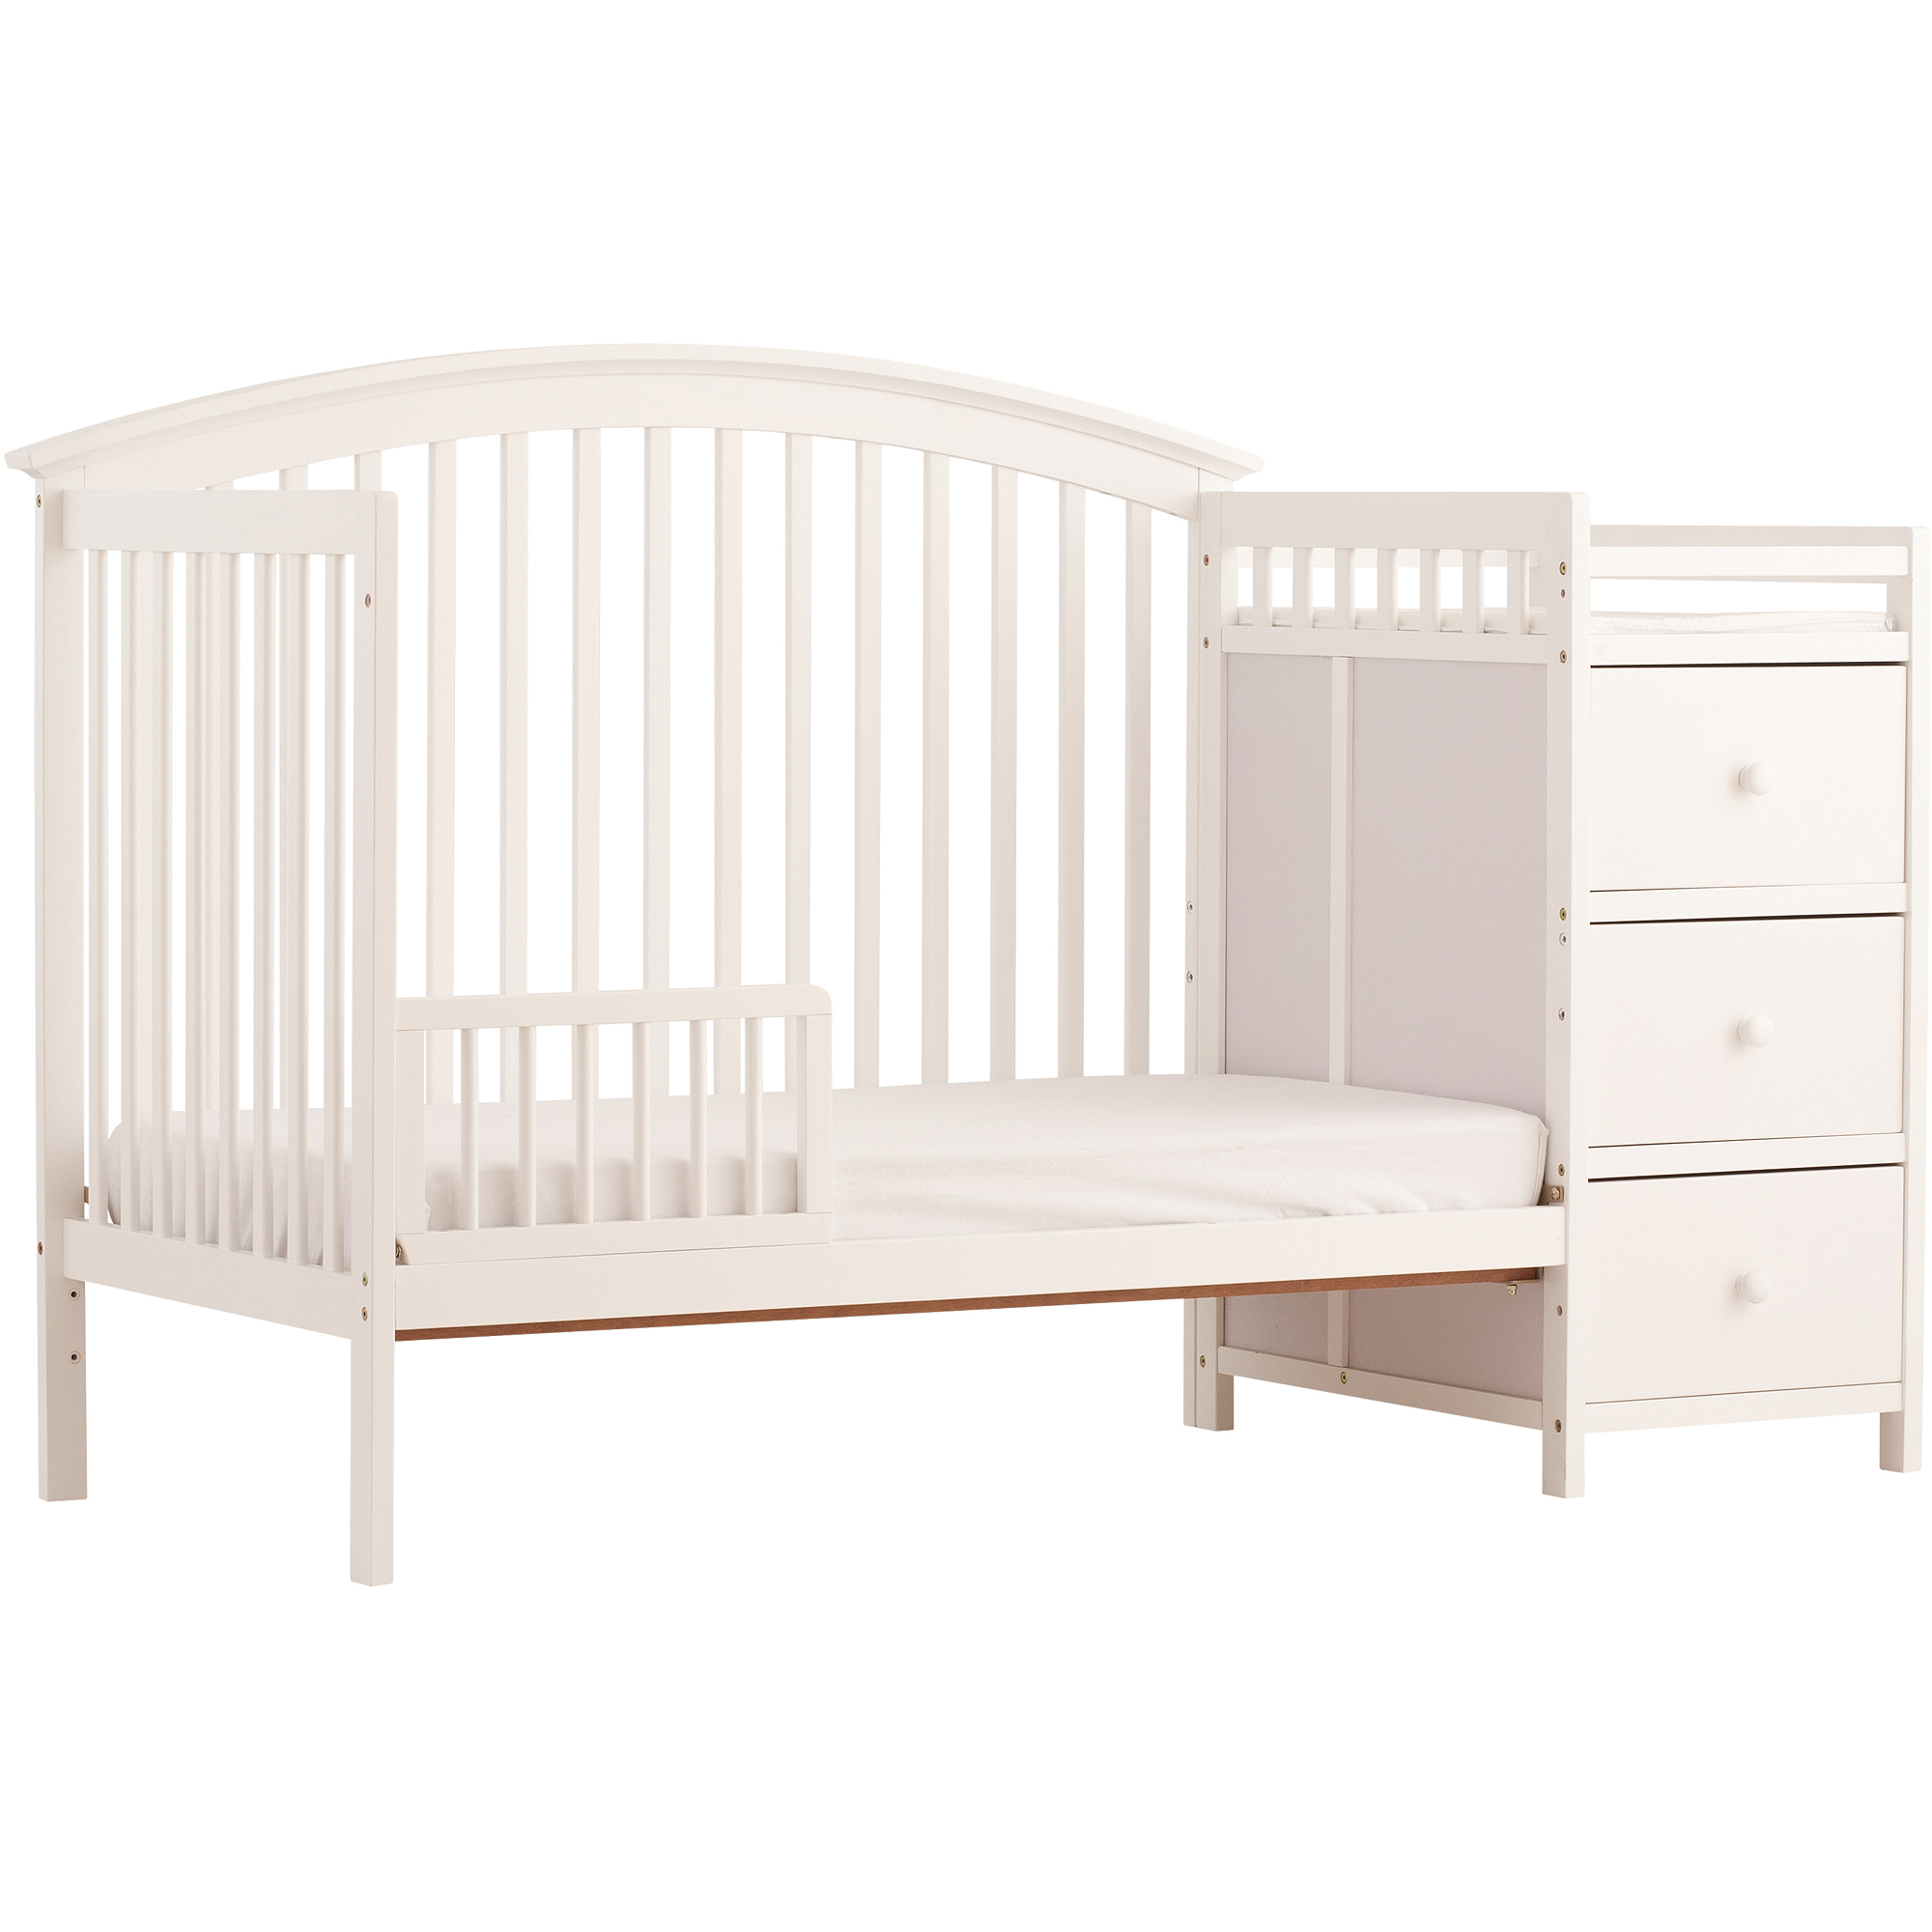 stork crib oak valentia toddler in at convertible cribs craft bed gowfbca reviews storkcraft pictures tuscany